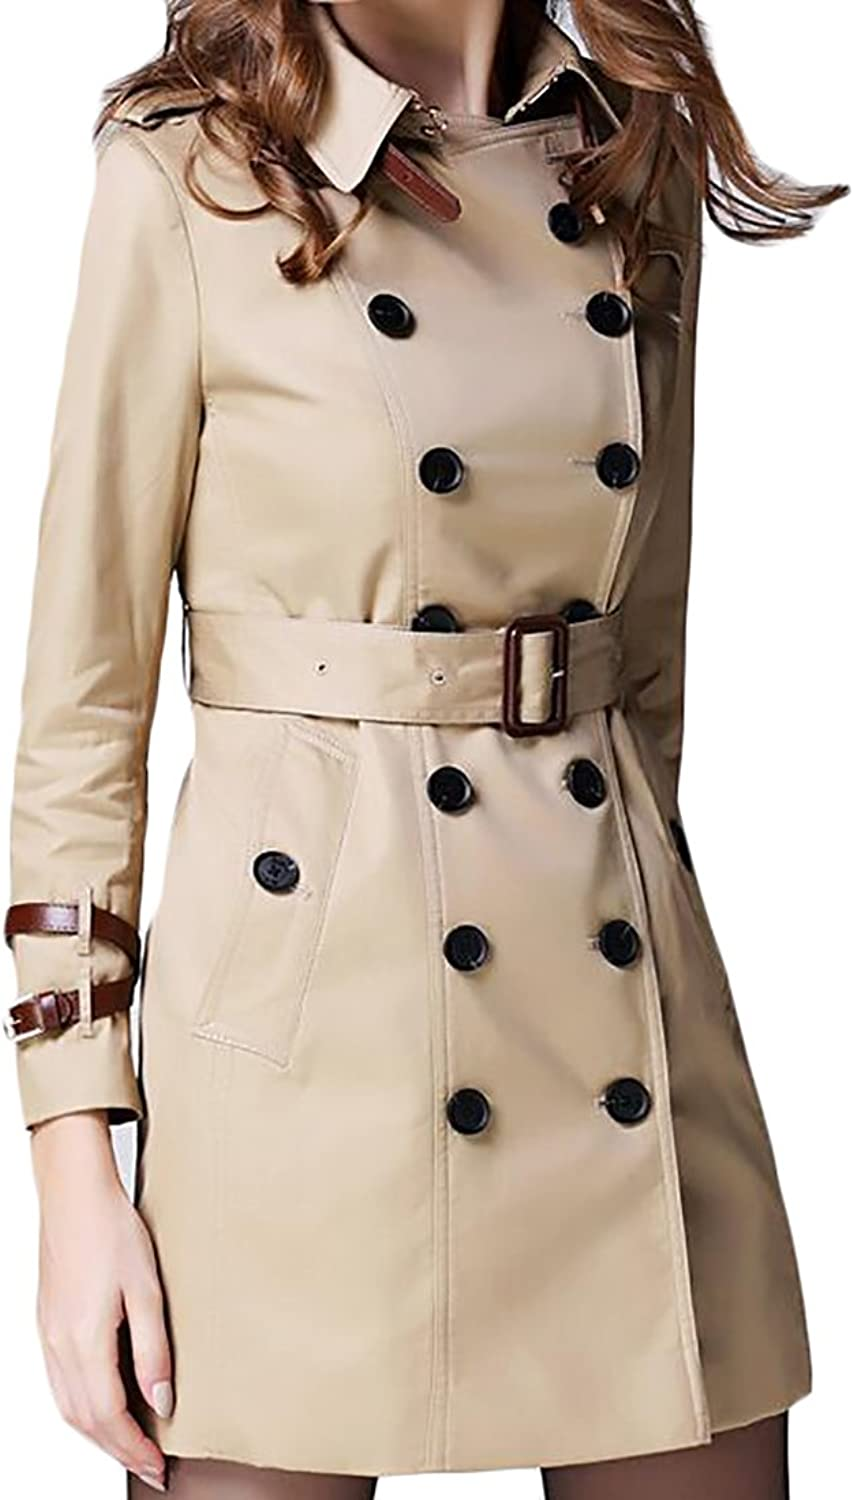 Esast Women Fashion Long Sleeve DoubleBreastedSolid color Lapel with Belt Wool Blend Pea Trench Coat